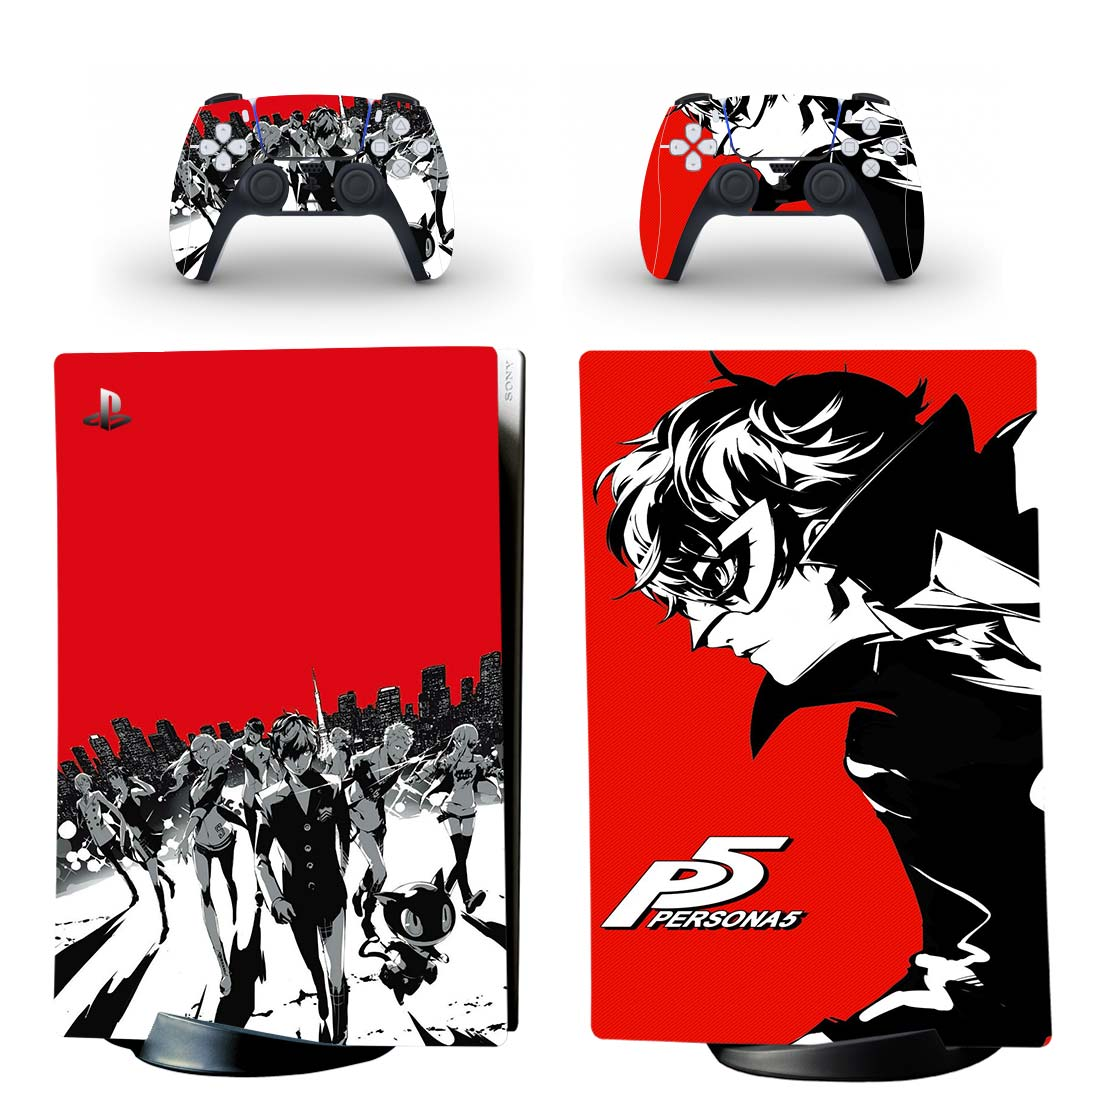 Persona 5 Skin Sticker Decal For PS5 Digital Edition